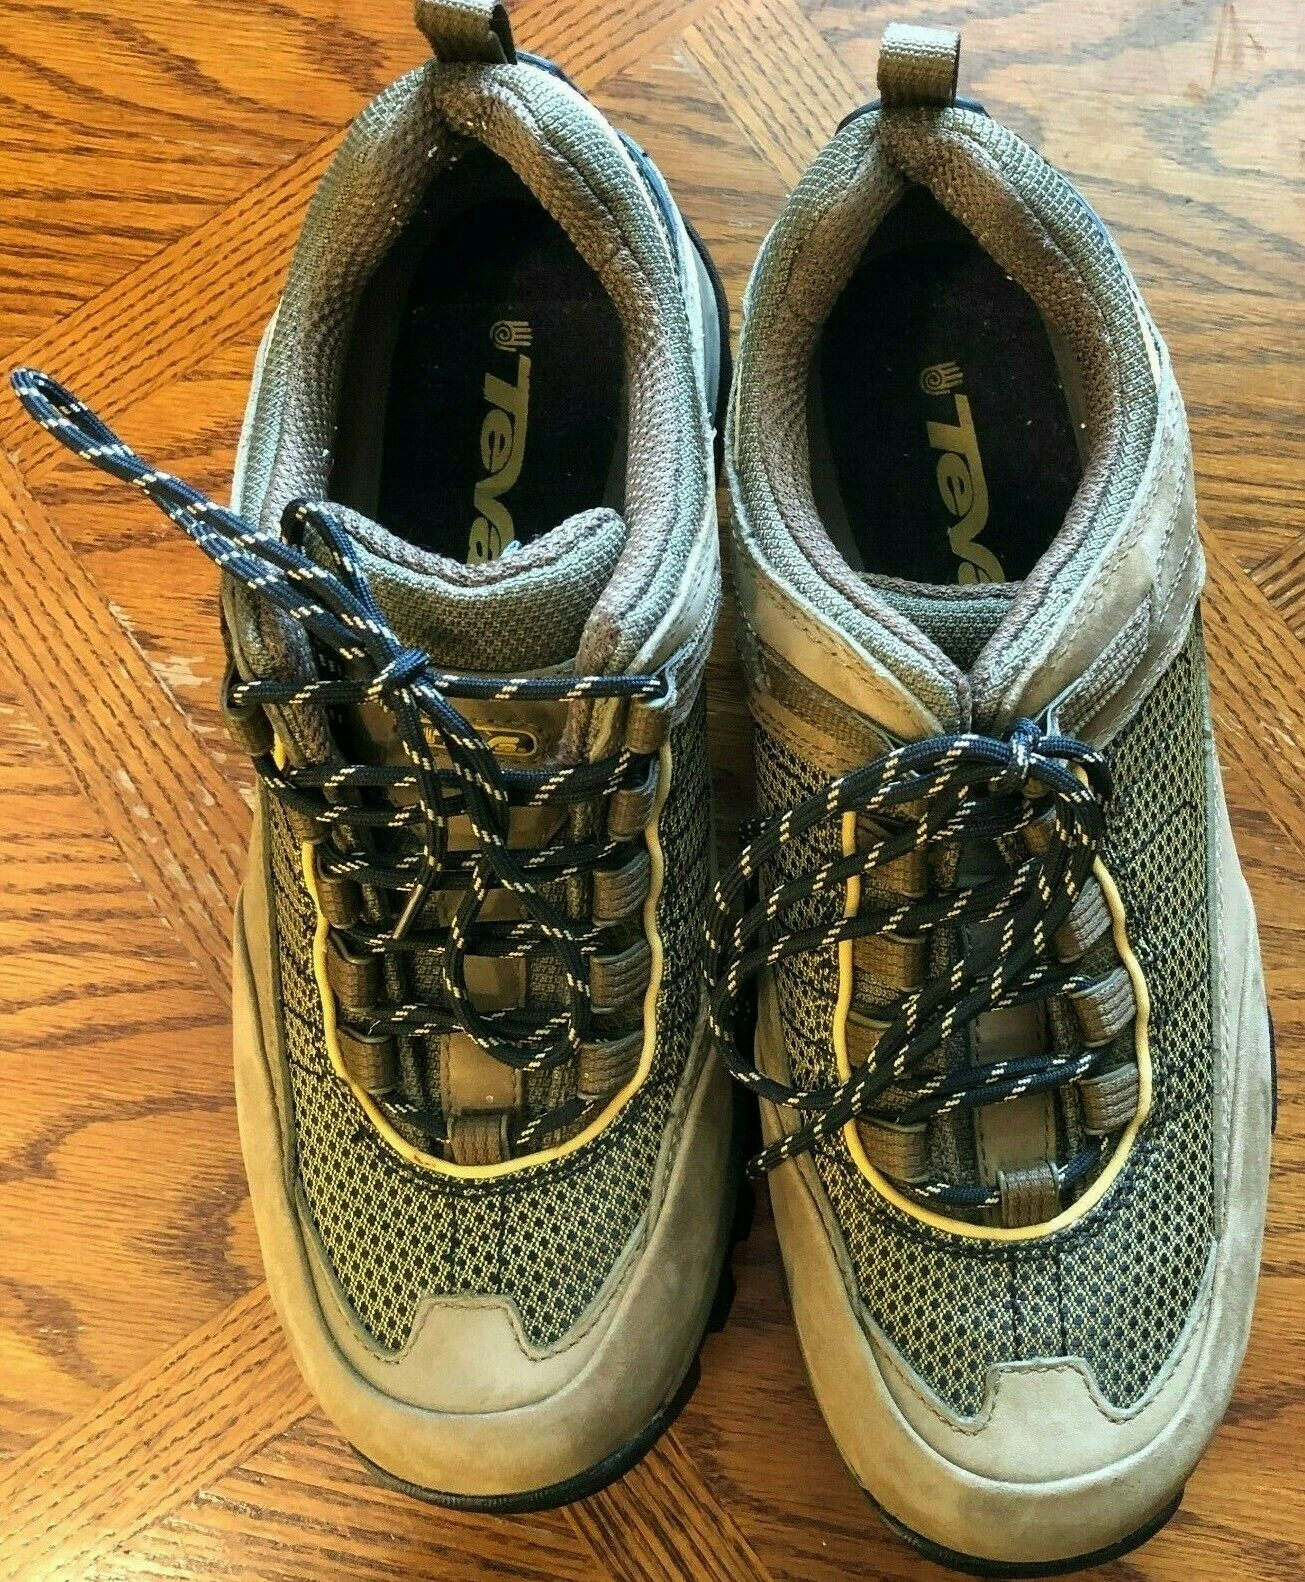 EUC Teva Hiking shoes SN 6868 Womens 9.5 M  Light Brown Lace Up Suede Mesh Boots  new sadie